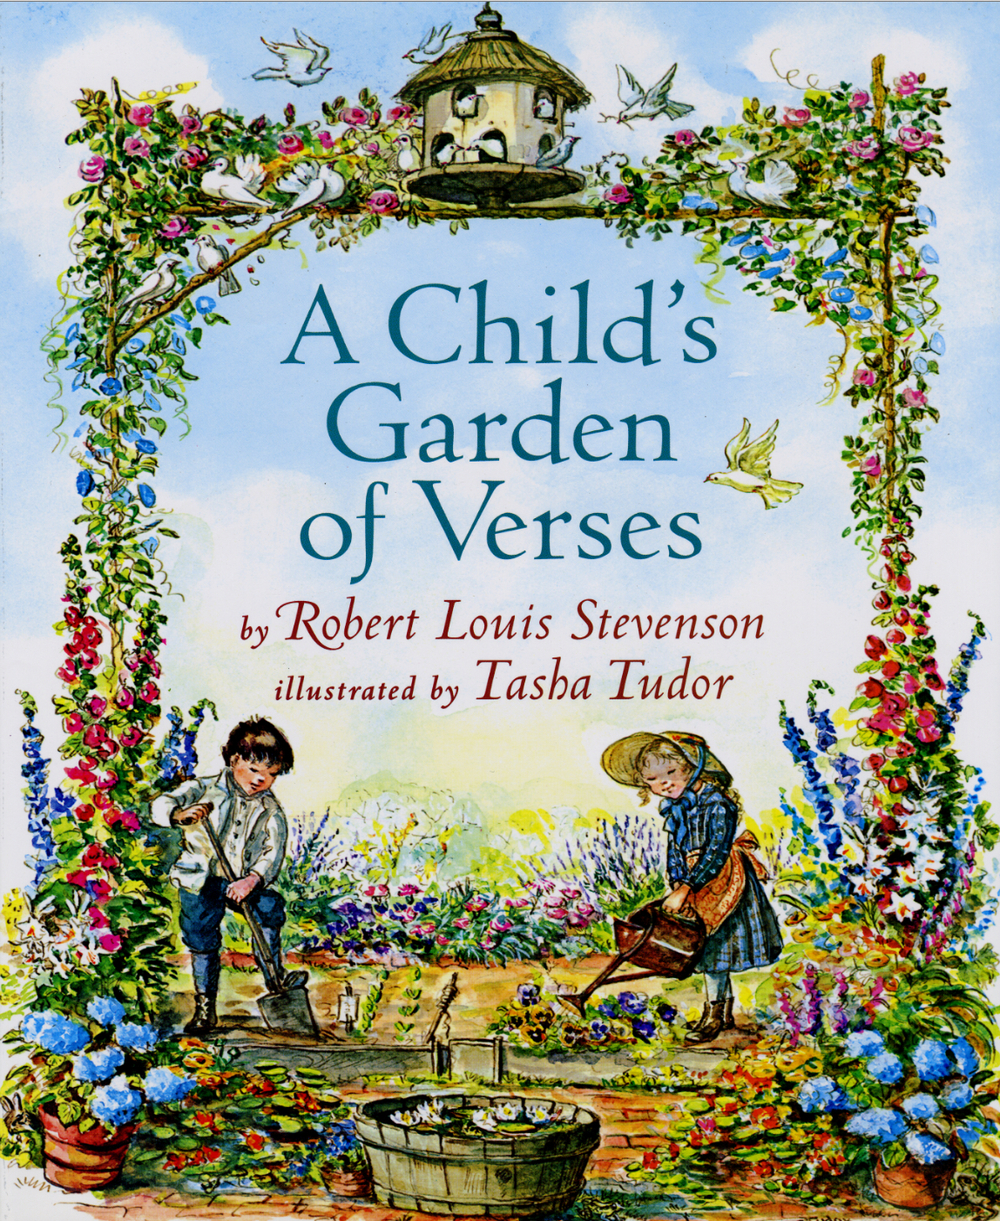 A Child's Garden of Verses , by Robert Louis Stephenson; illustrated by Tasha Tudor